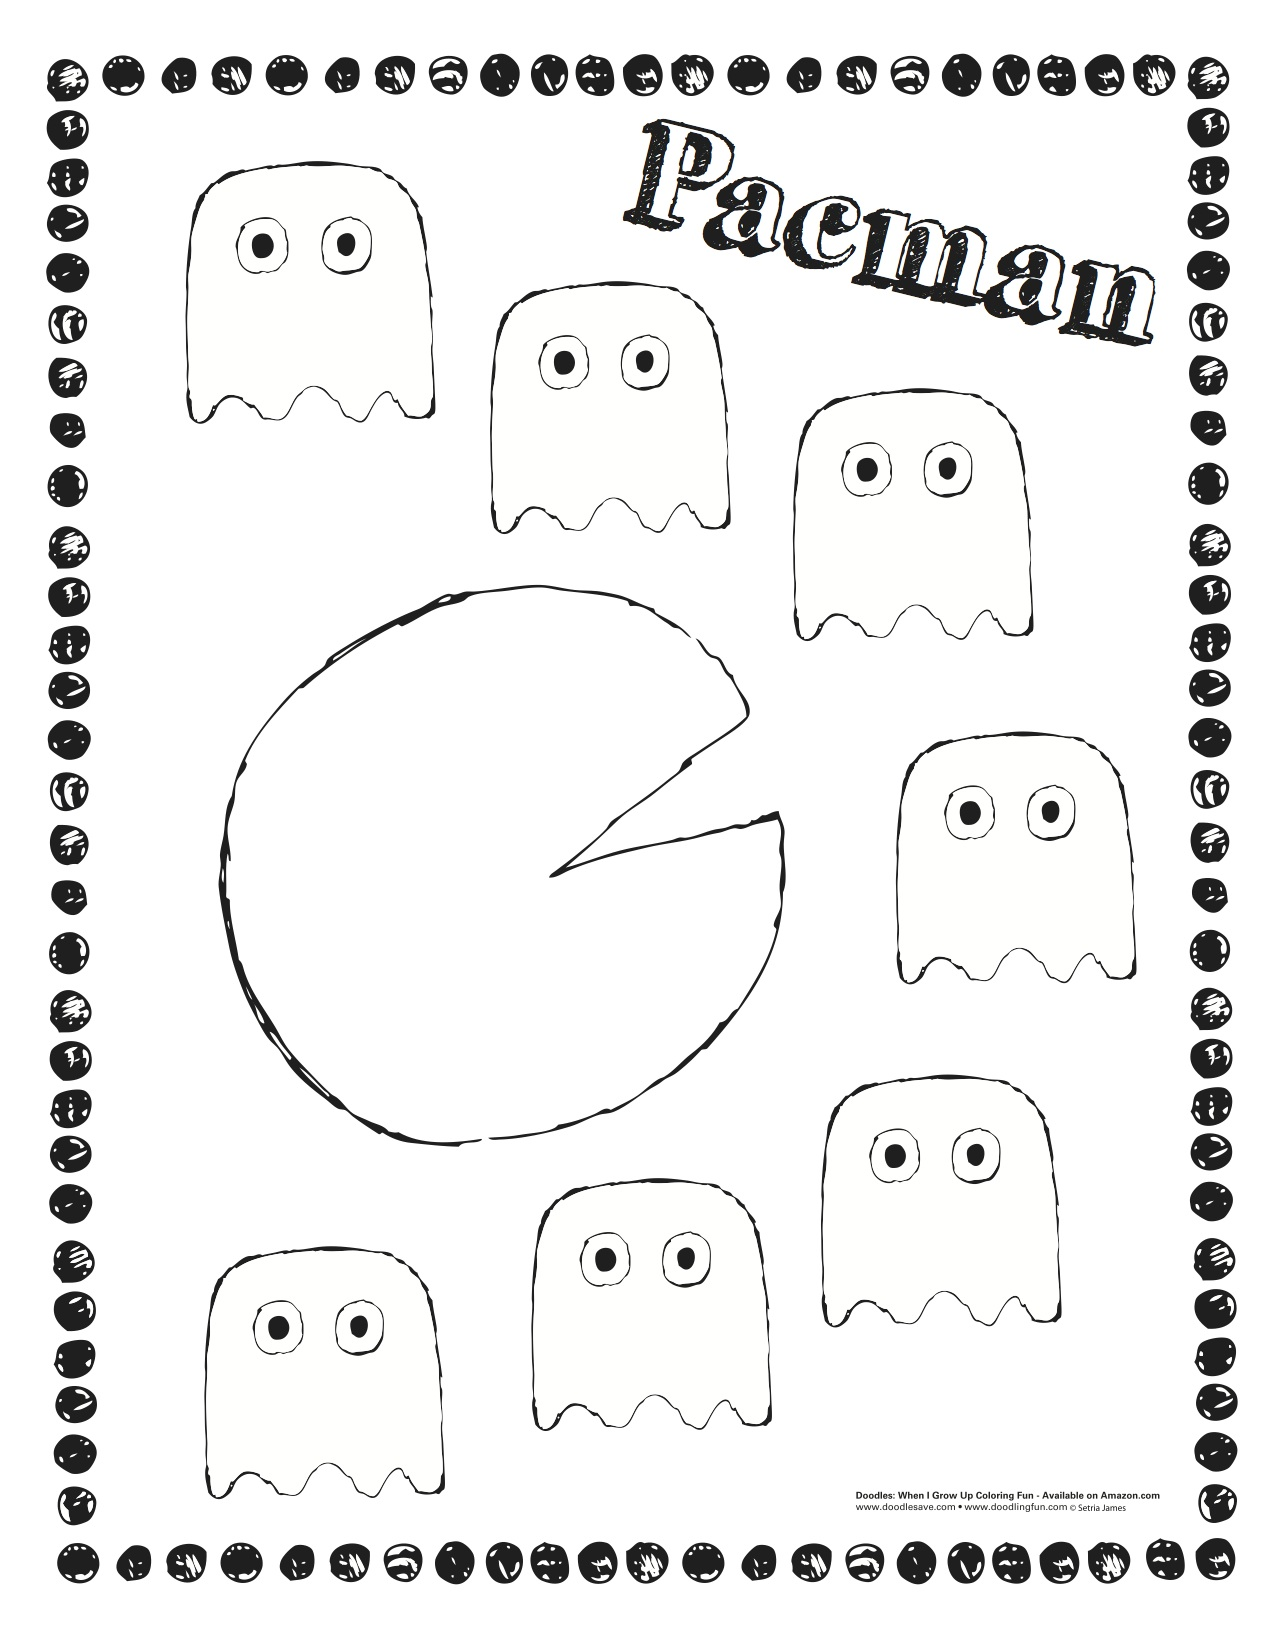 pac man maze coloring pages - photo#4